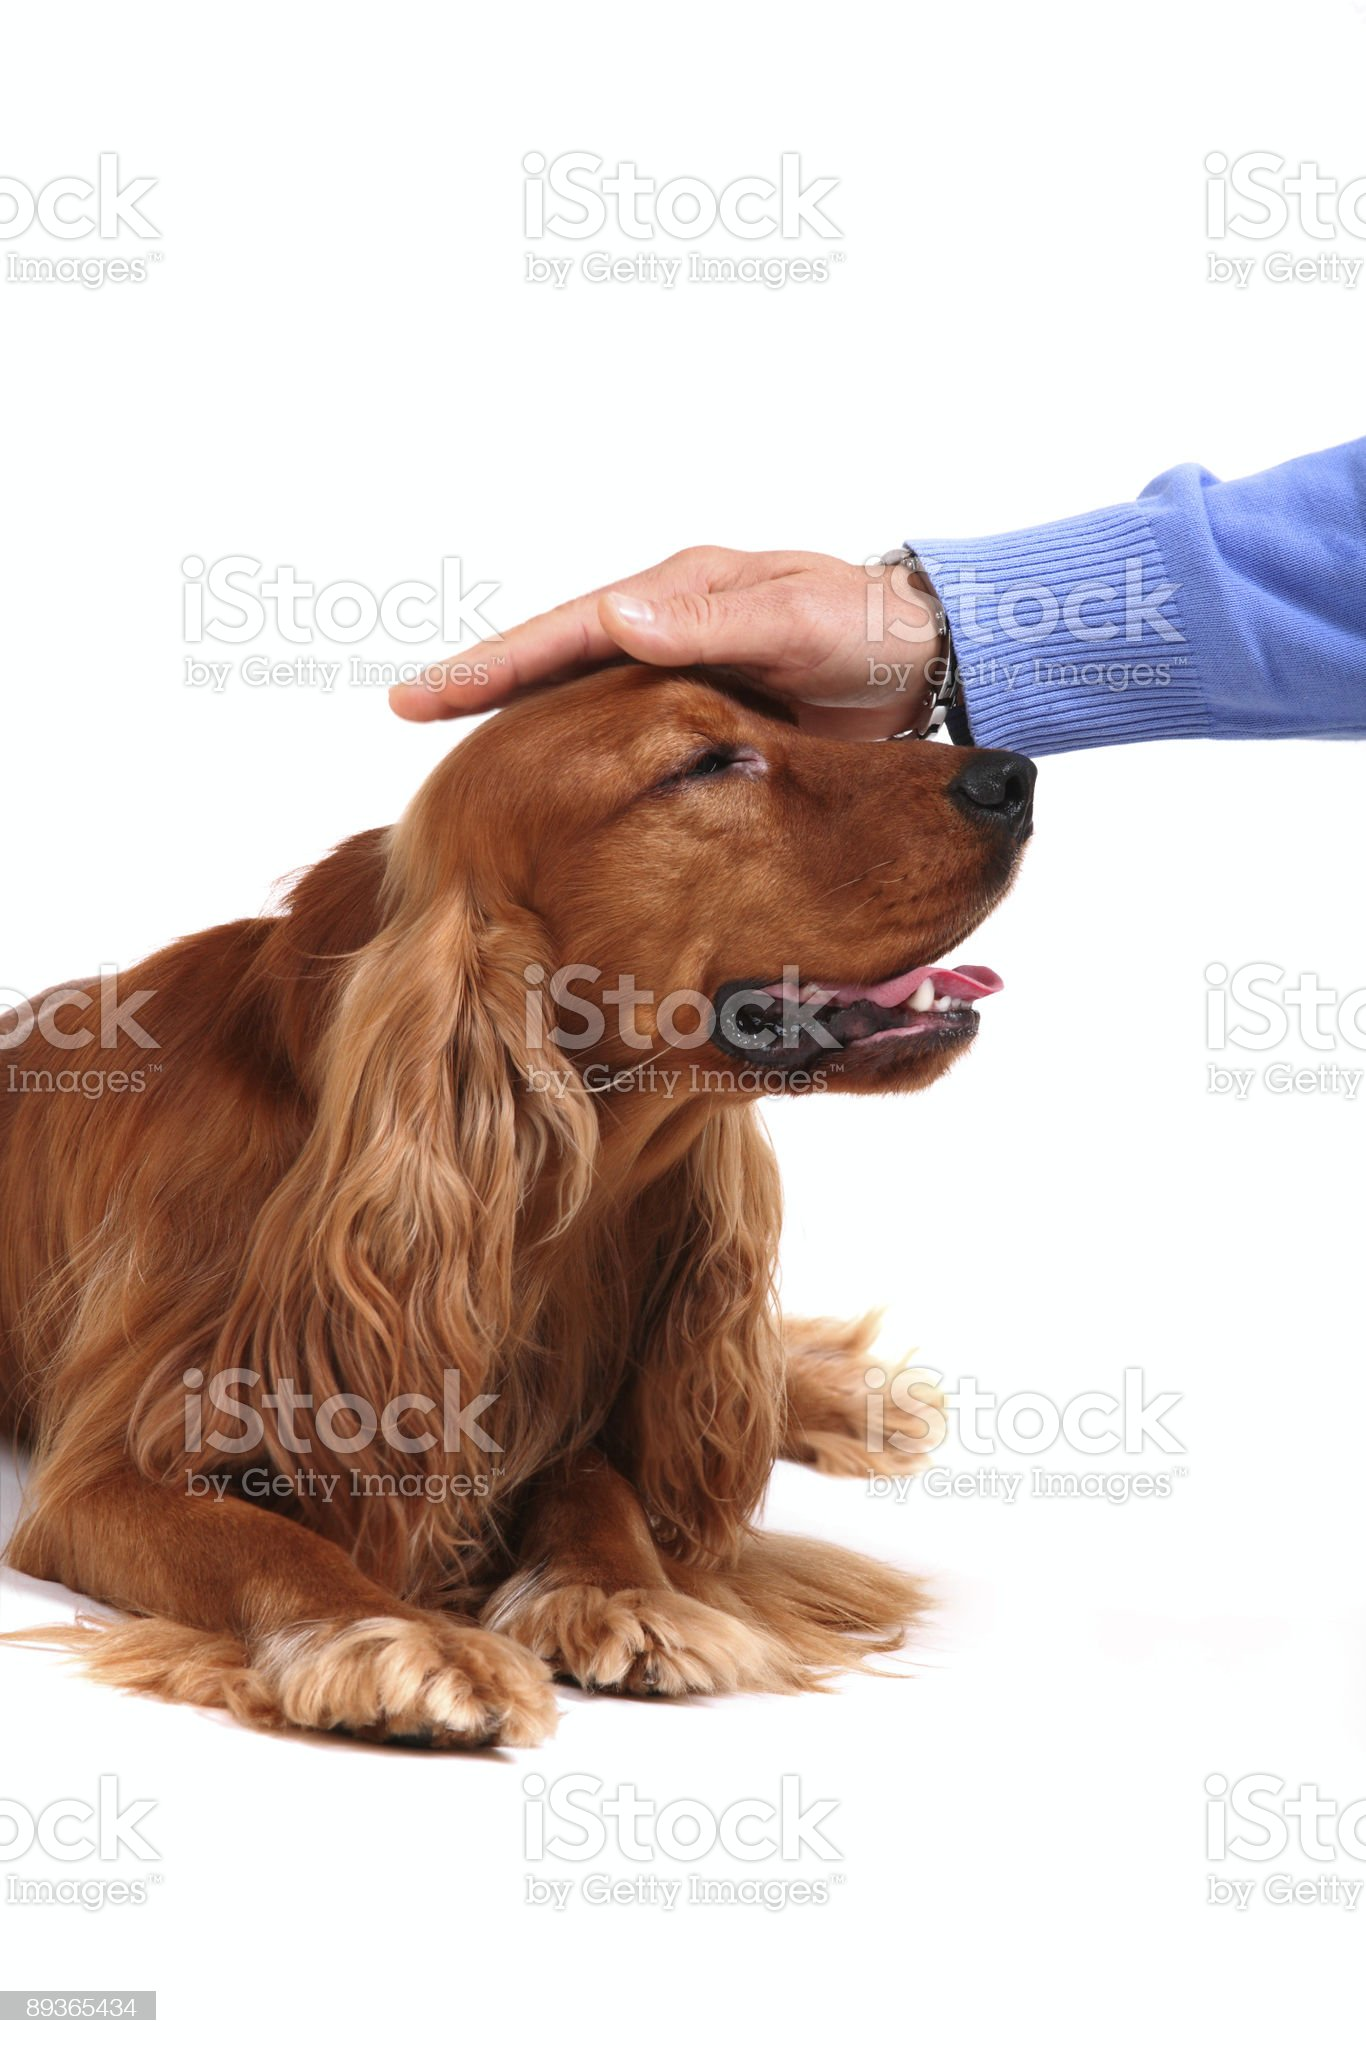 good boy! royalty-free stock photo